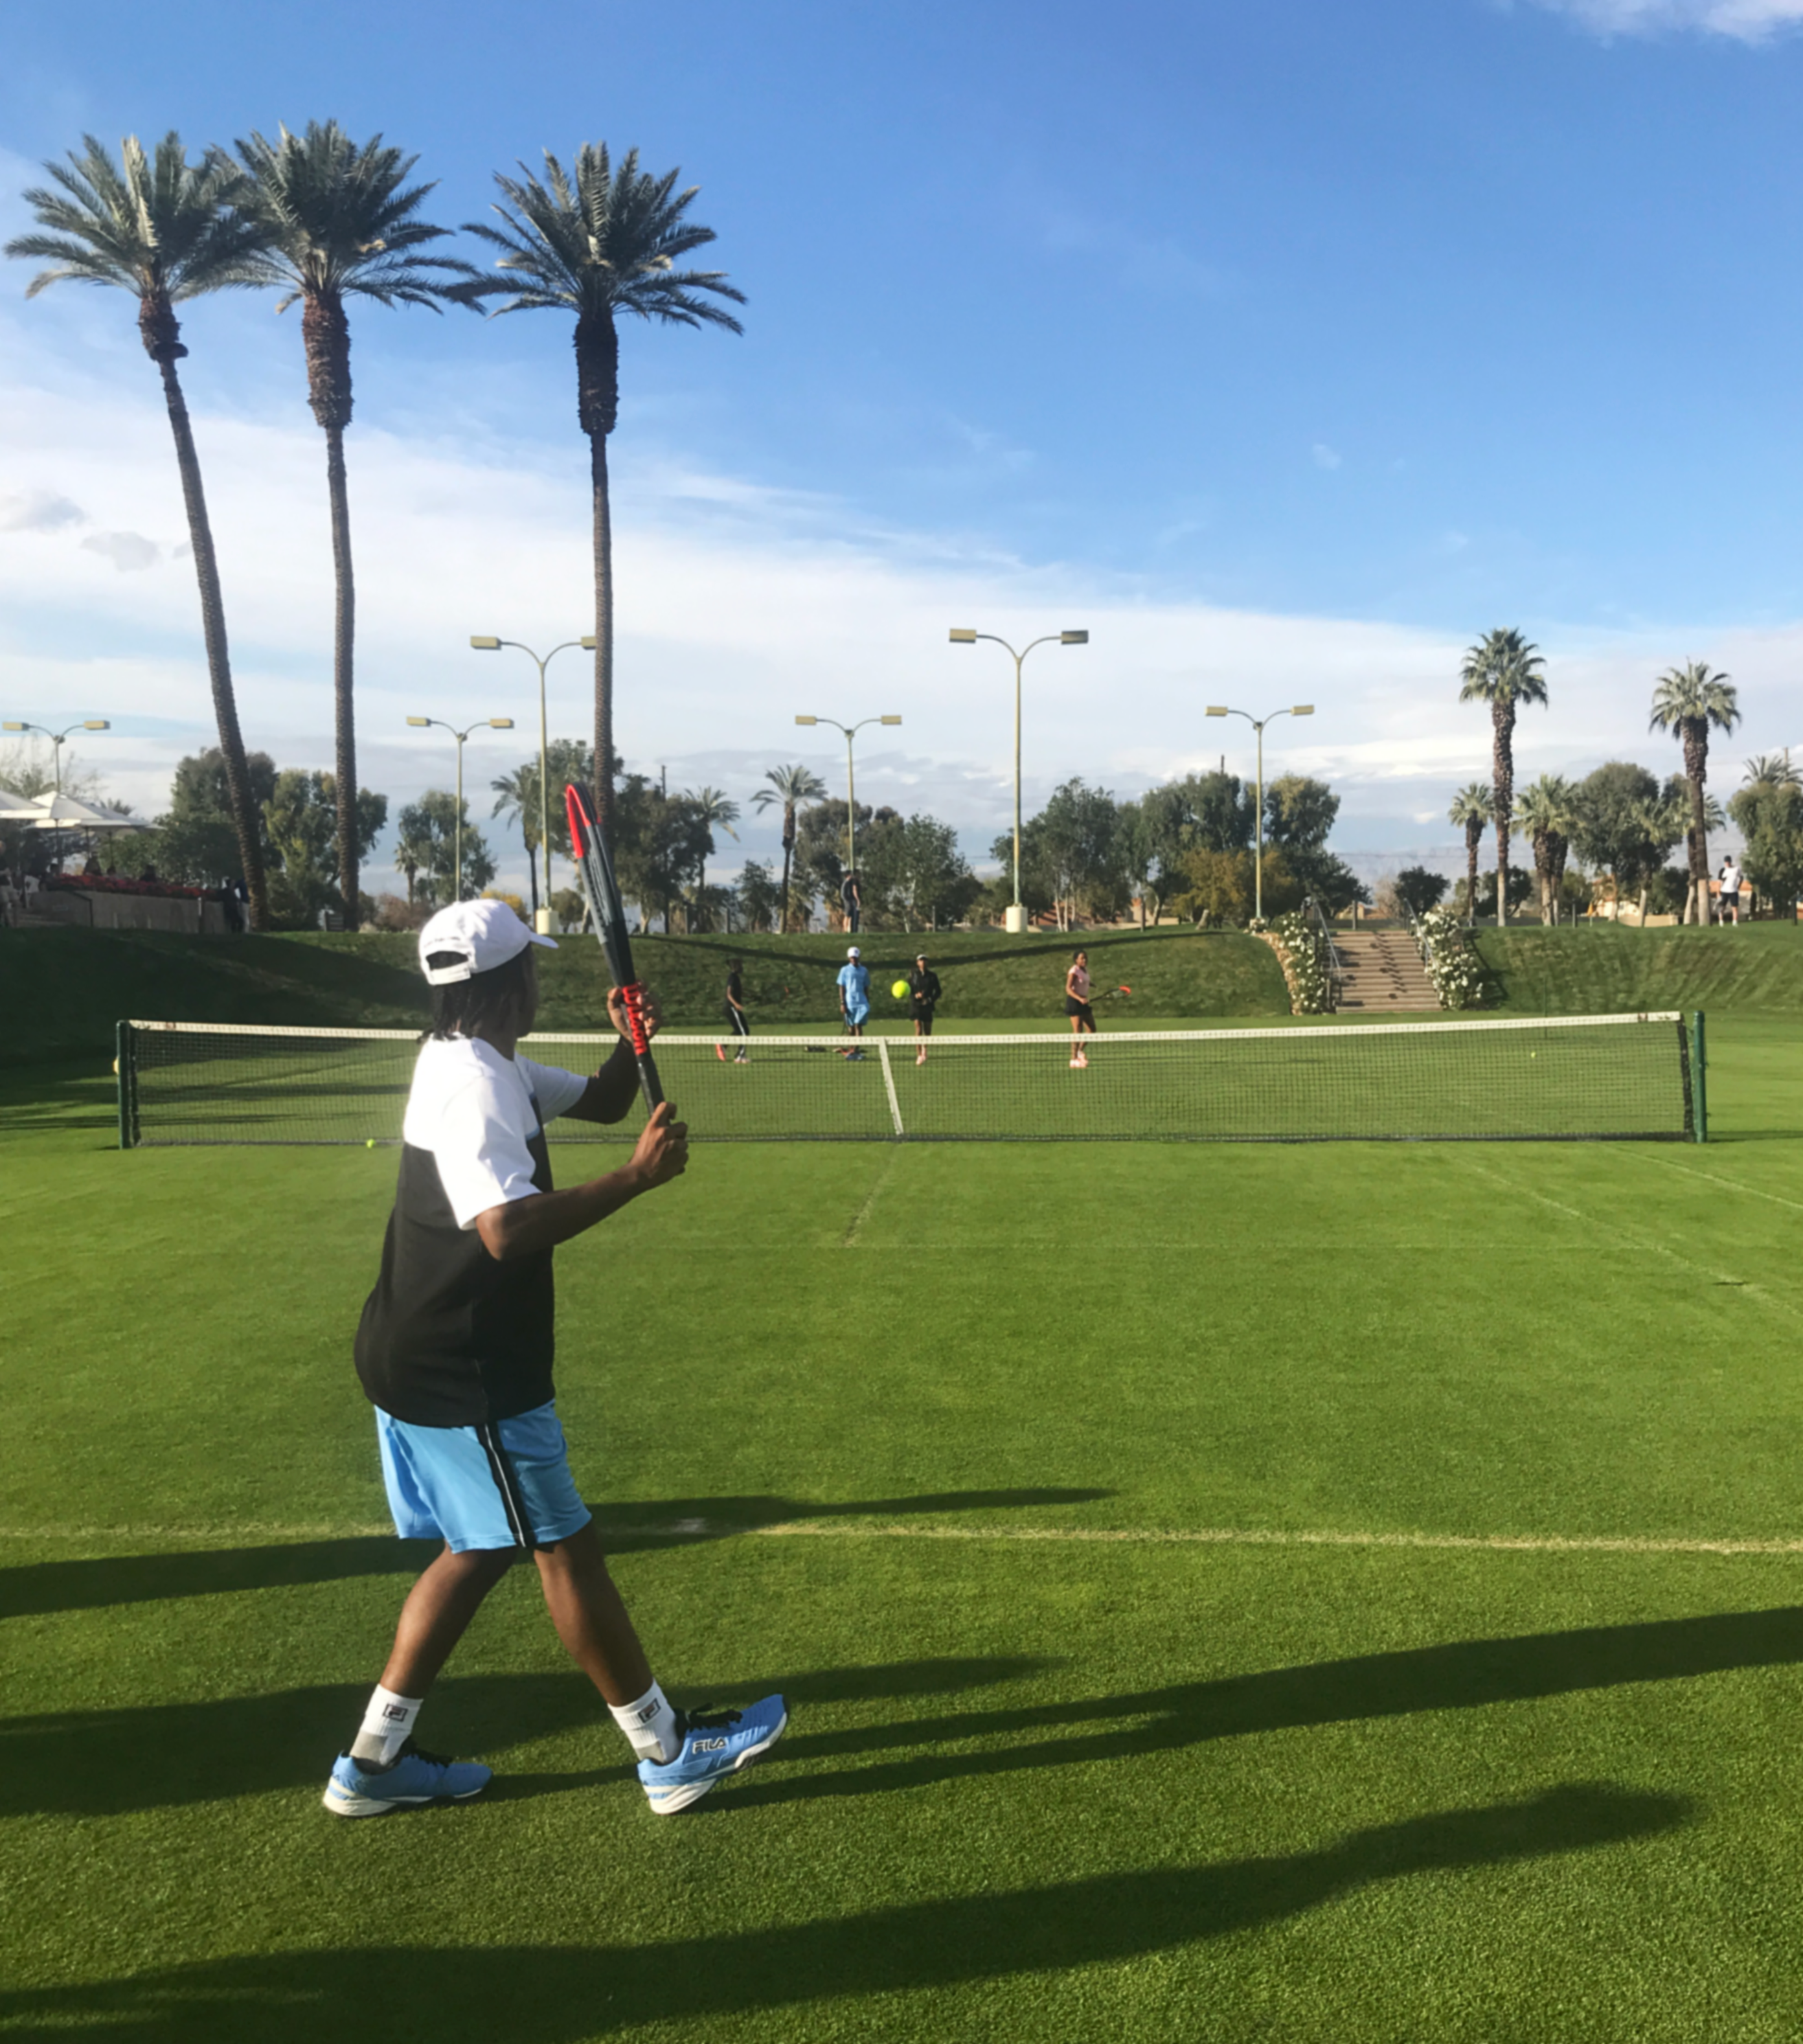 Finalist of the Tie Break Tens Challenger, Romero, tests out his new Wilson Clash Racket